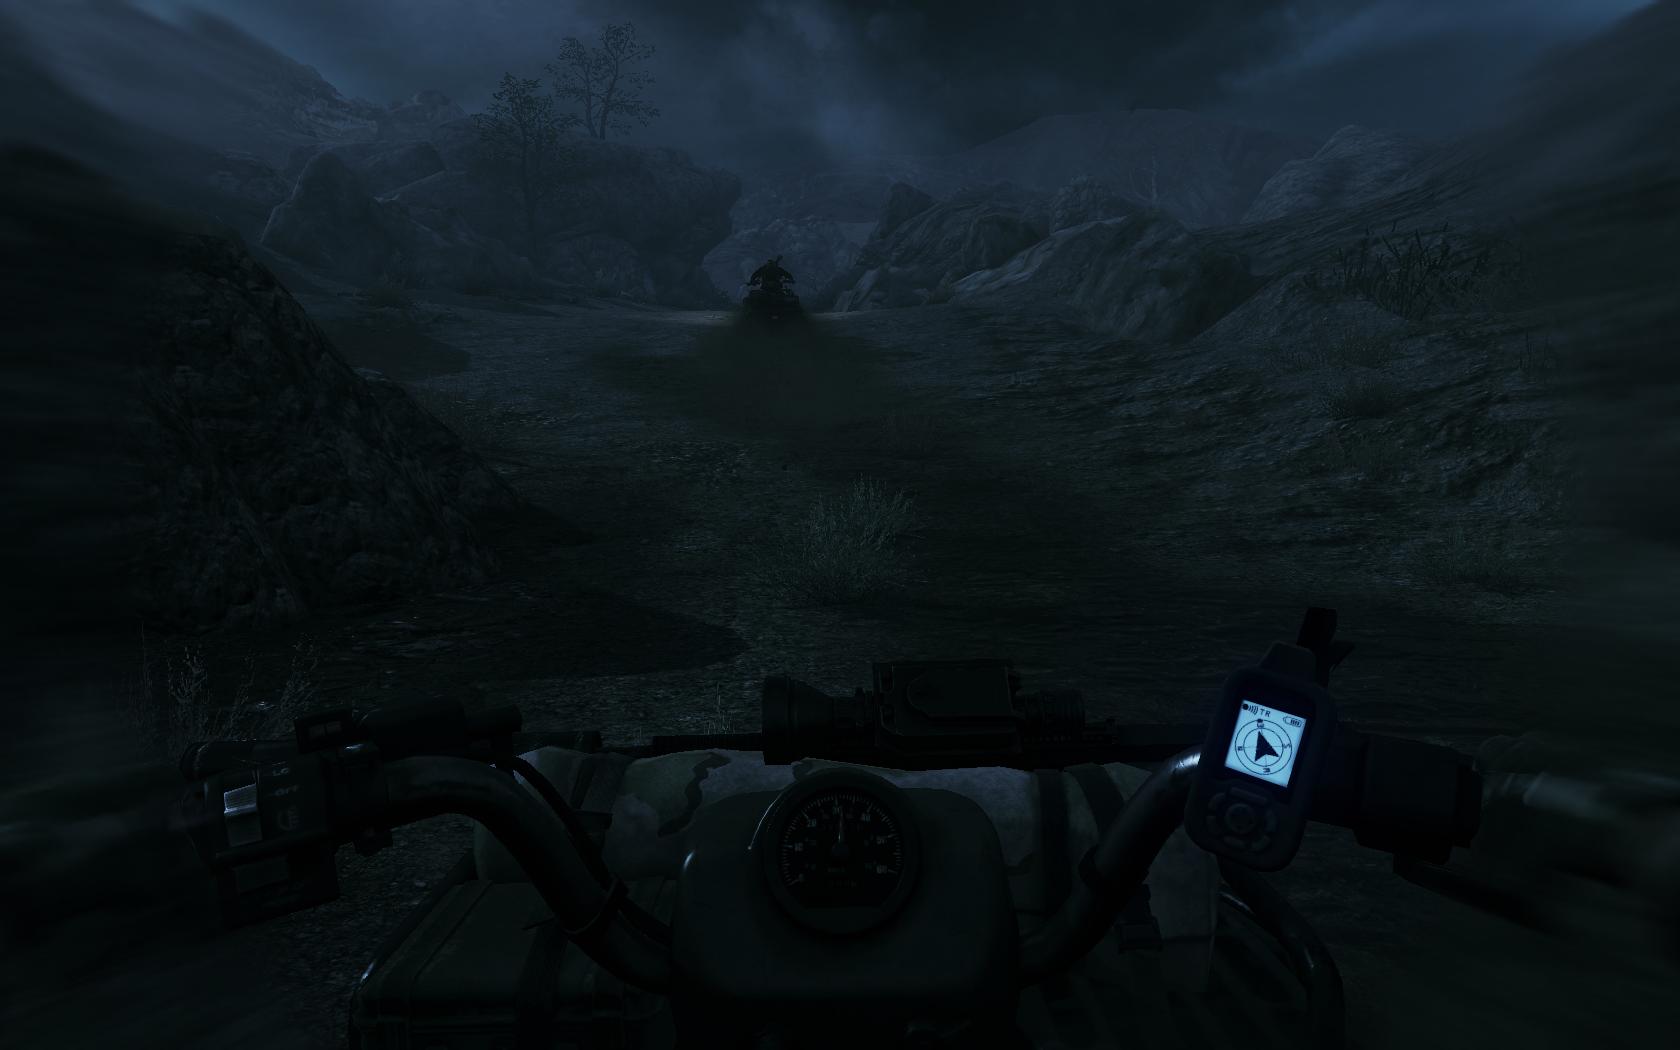 Medal of Honor Windows And they use quad bikes to move through the uneven terrain